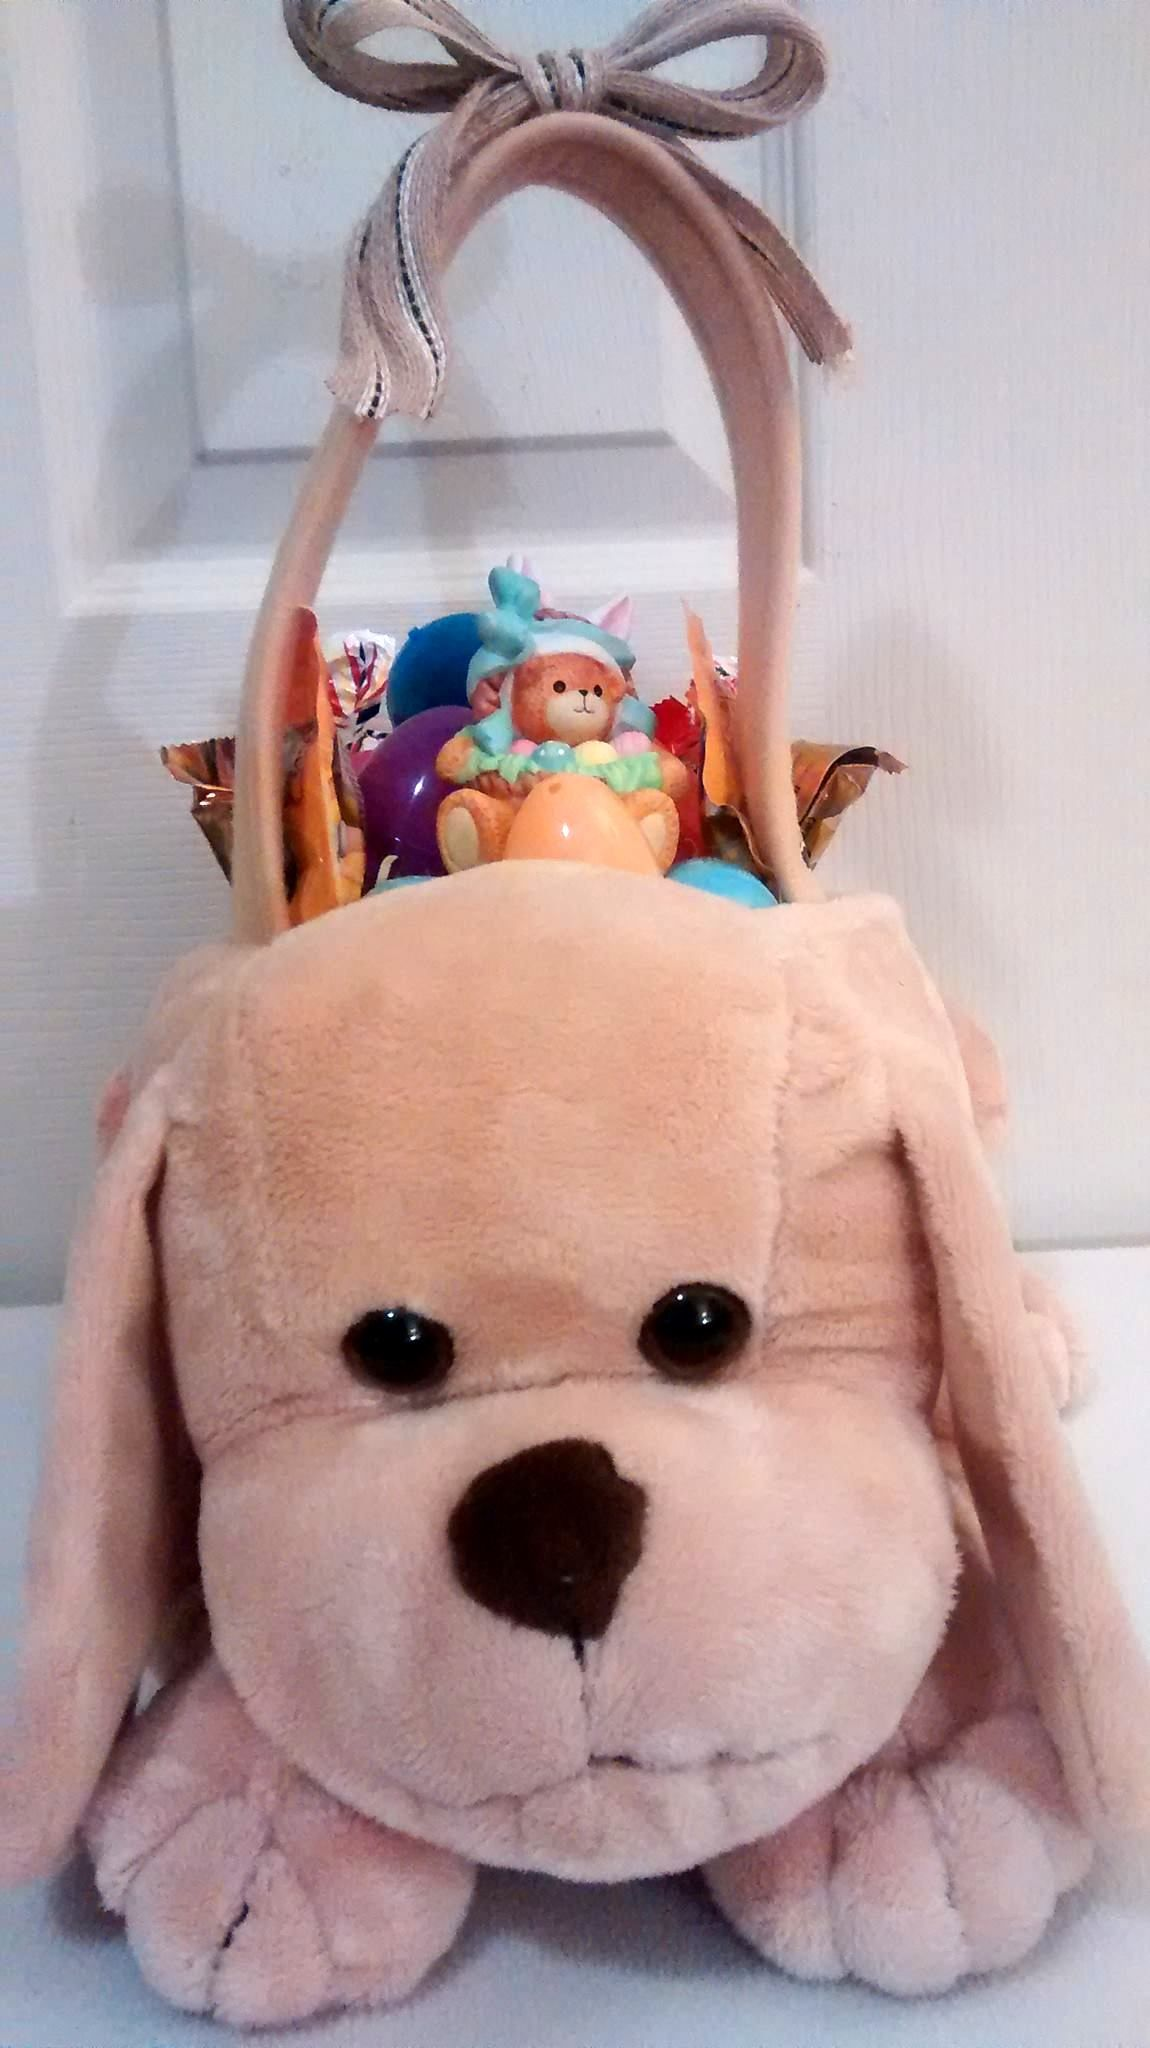 Tan puppy toyeaster gift basket 30 all payments through paypal tan puppy toyeaster gift basket 30 all payments through paypal please message me basket negle Choice Image